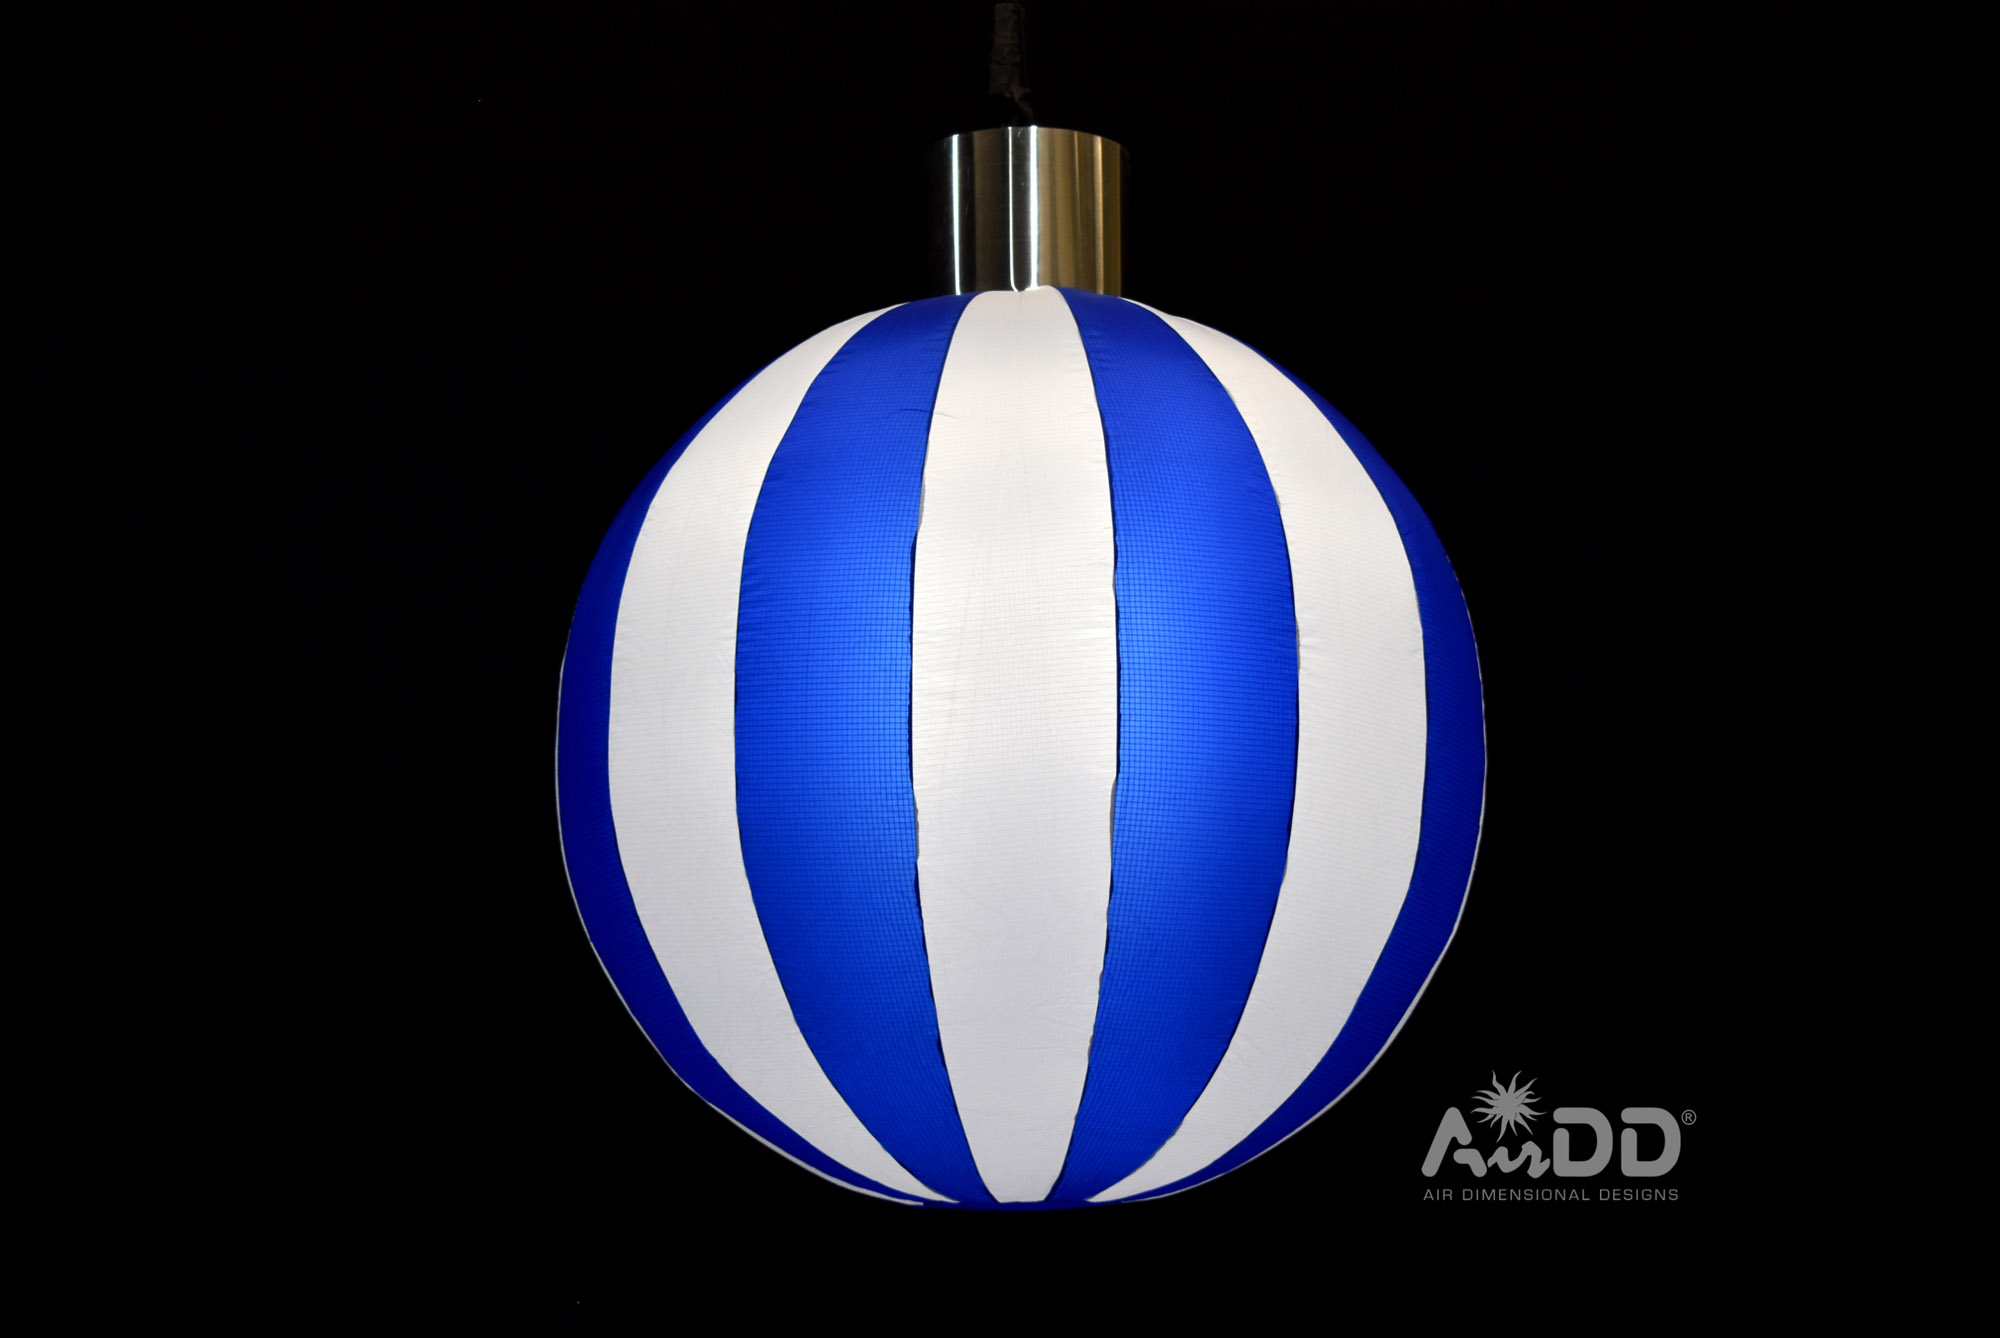 blue-ornament-1-uai-2880x1927.jpg